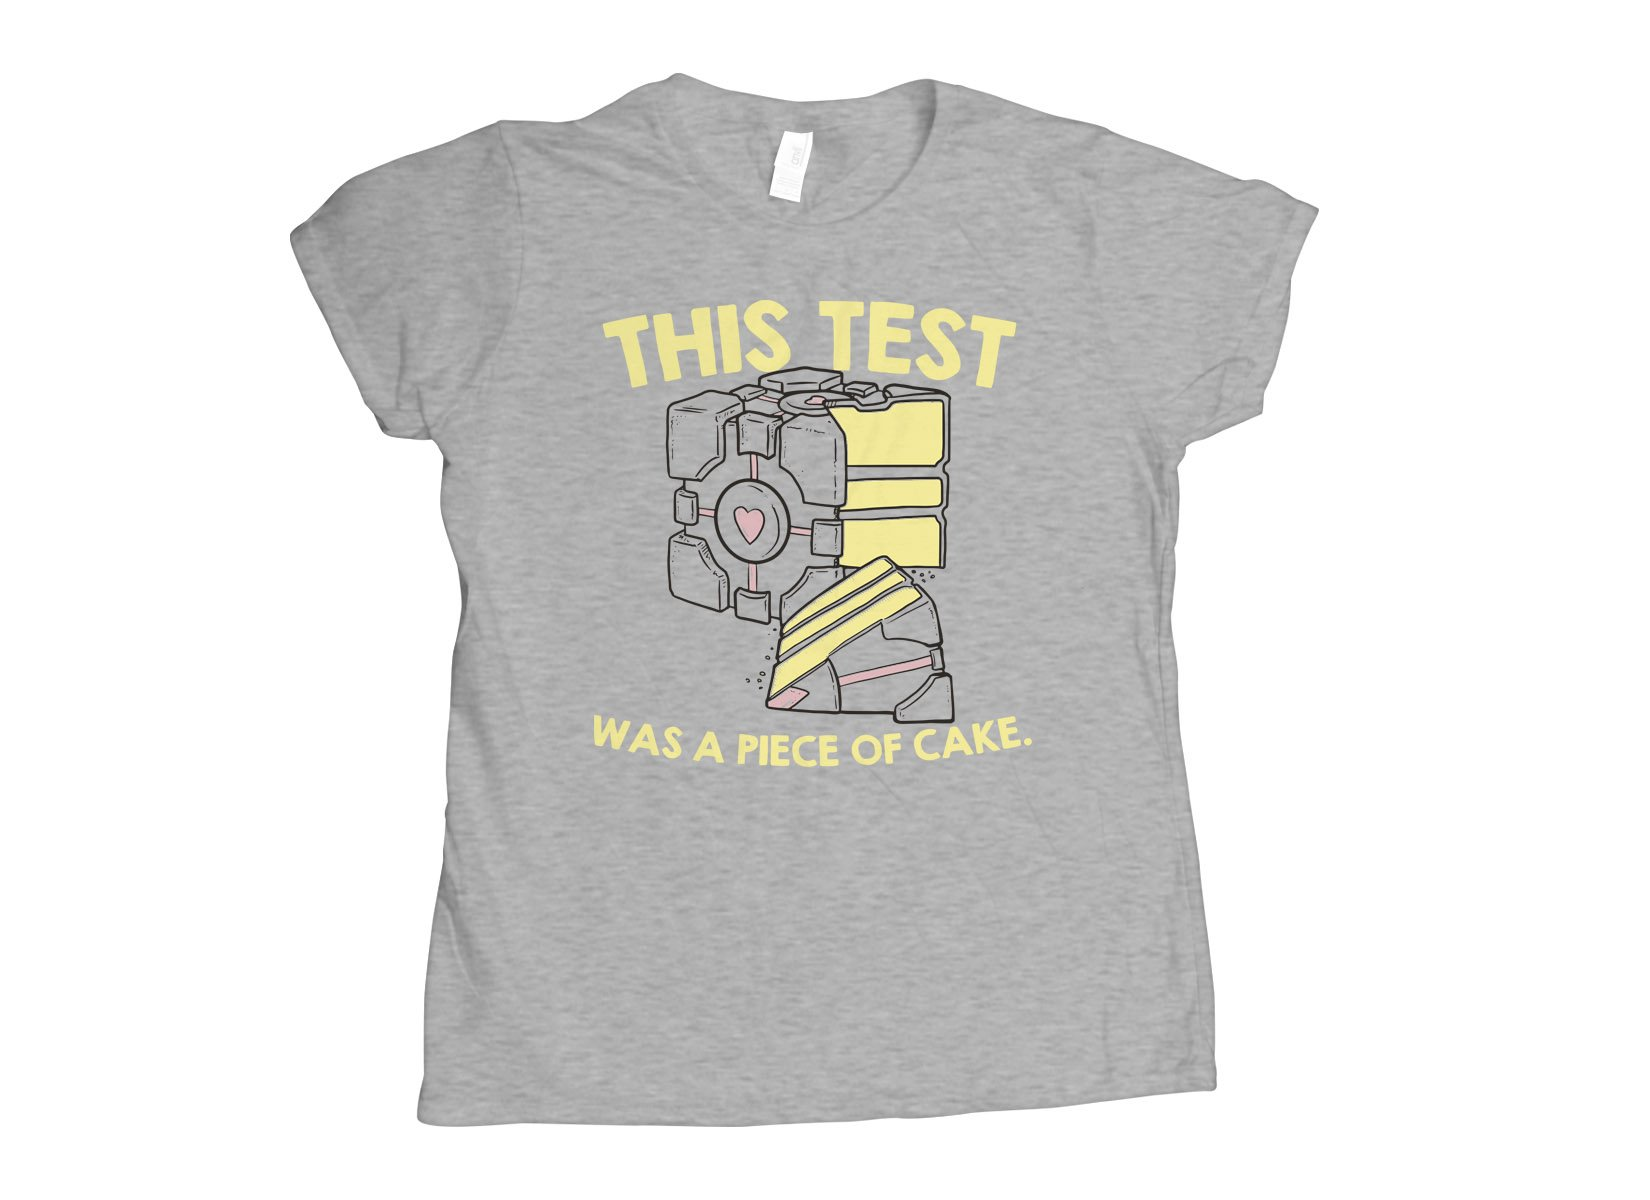 This Test Was A Piece Of Cake on Womens T-Shirt